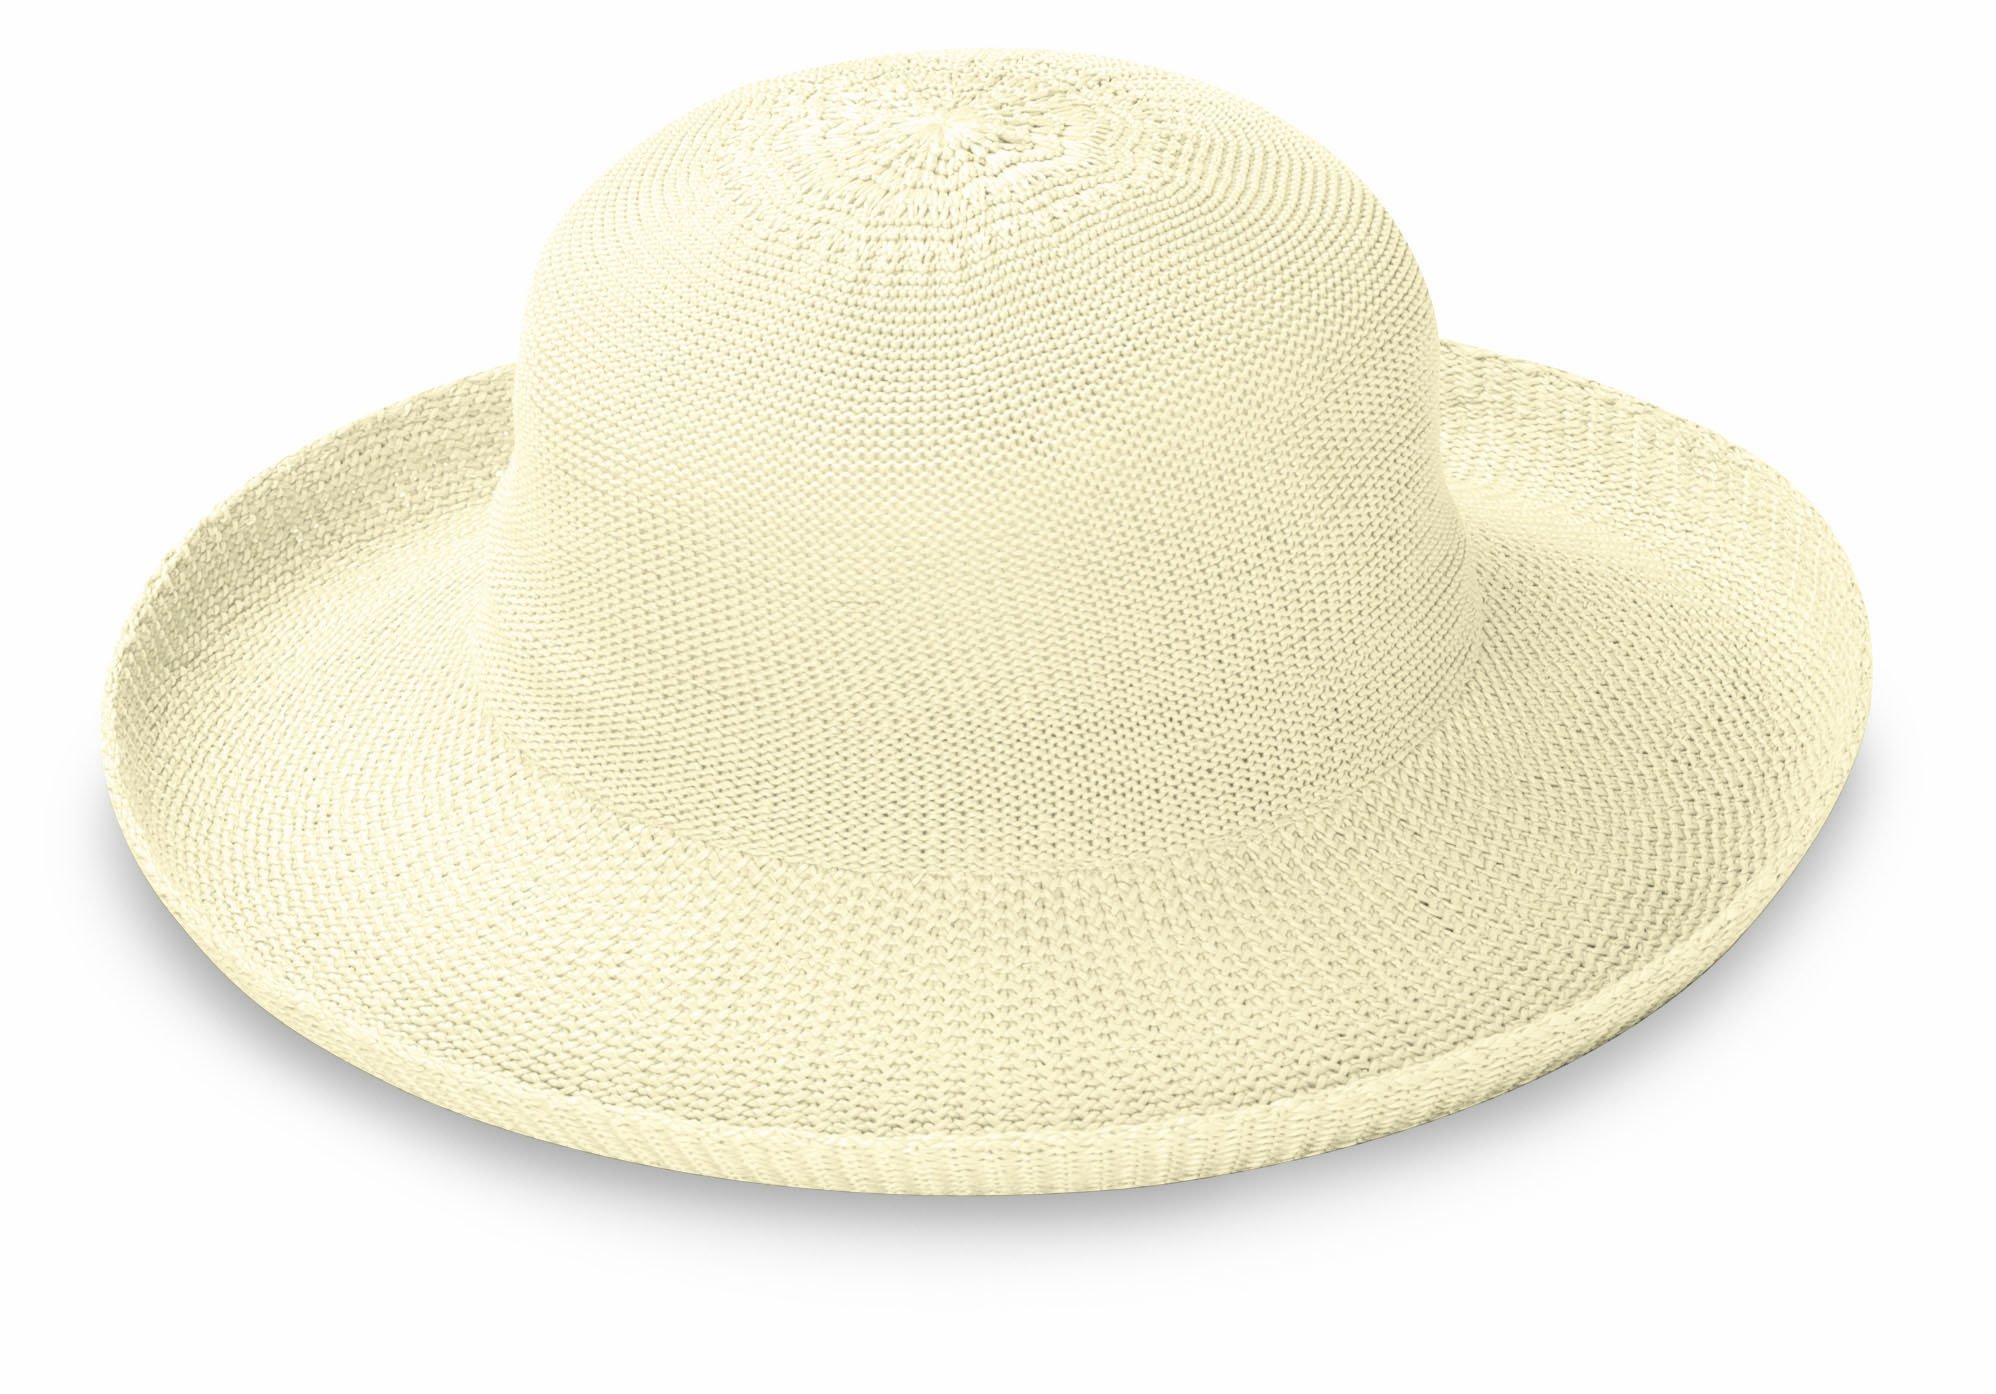 Wallaroo Hat Company Women's Victoria Sun Hat - Lightweight and Packable Hat, Natural